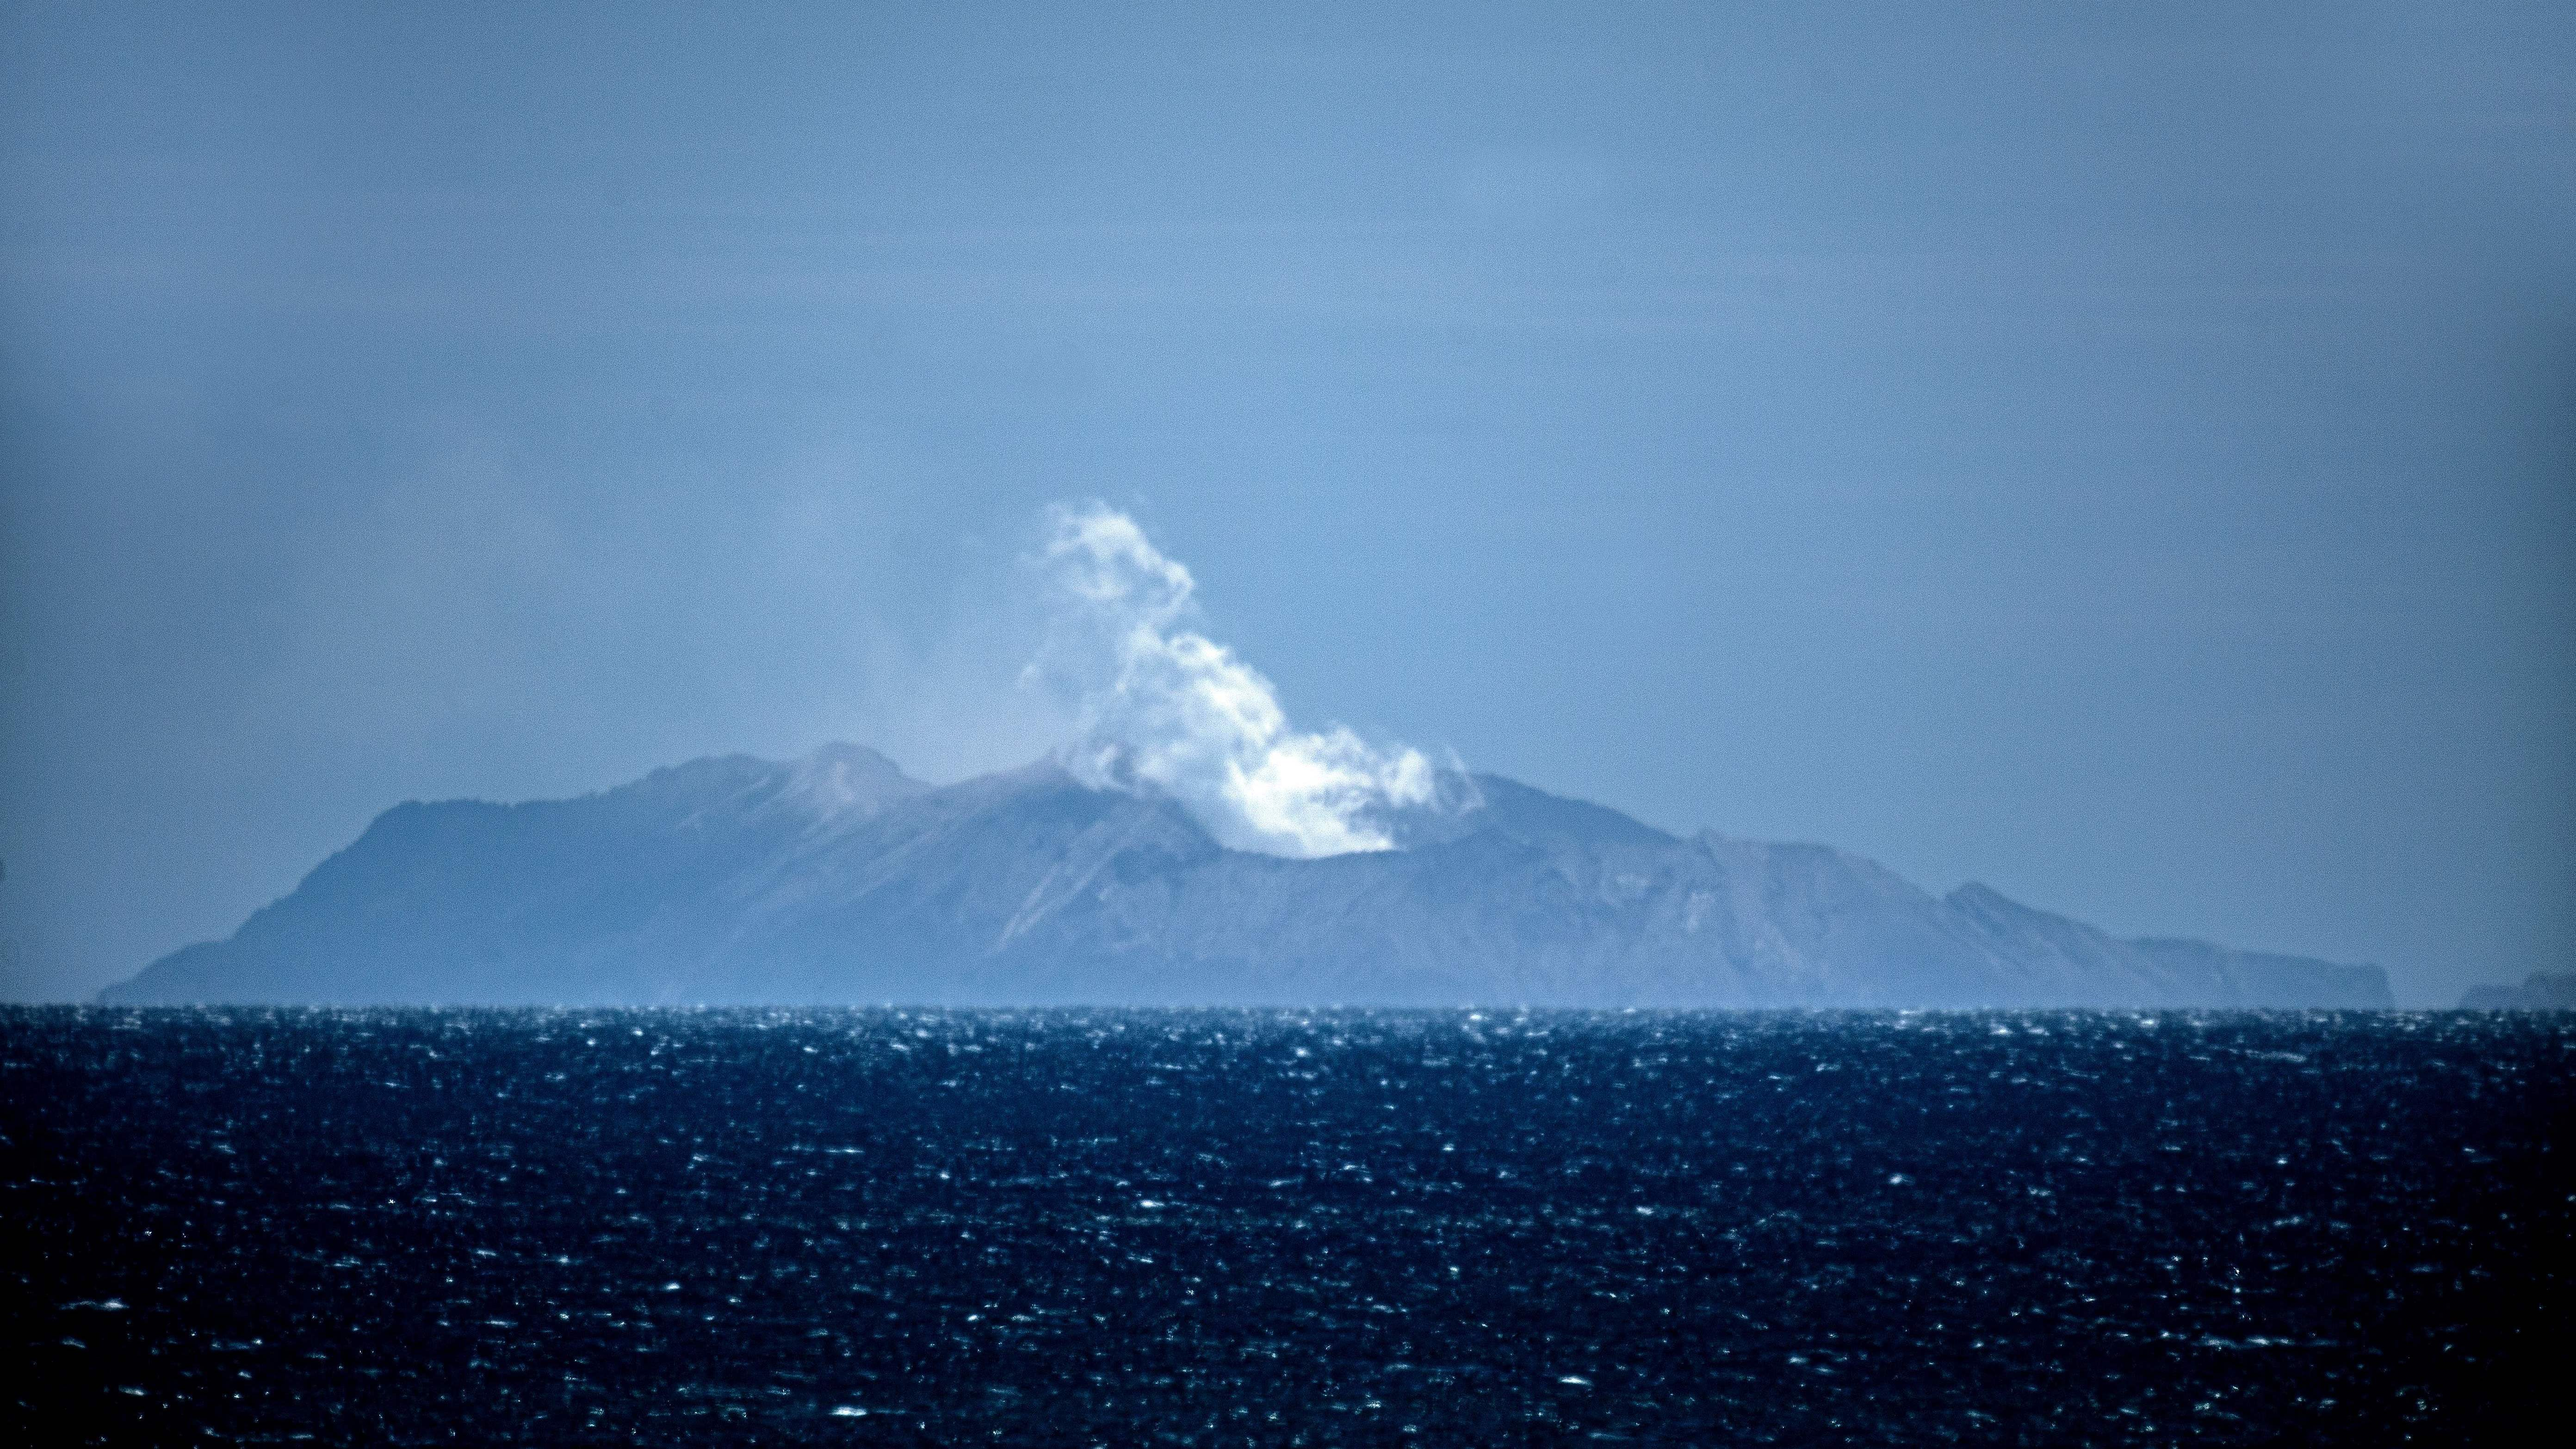 New Zealand's White Island Volcano Leaves At Least 6 Dead, Many More Questions